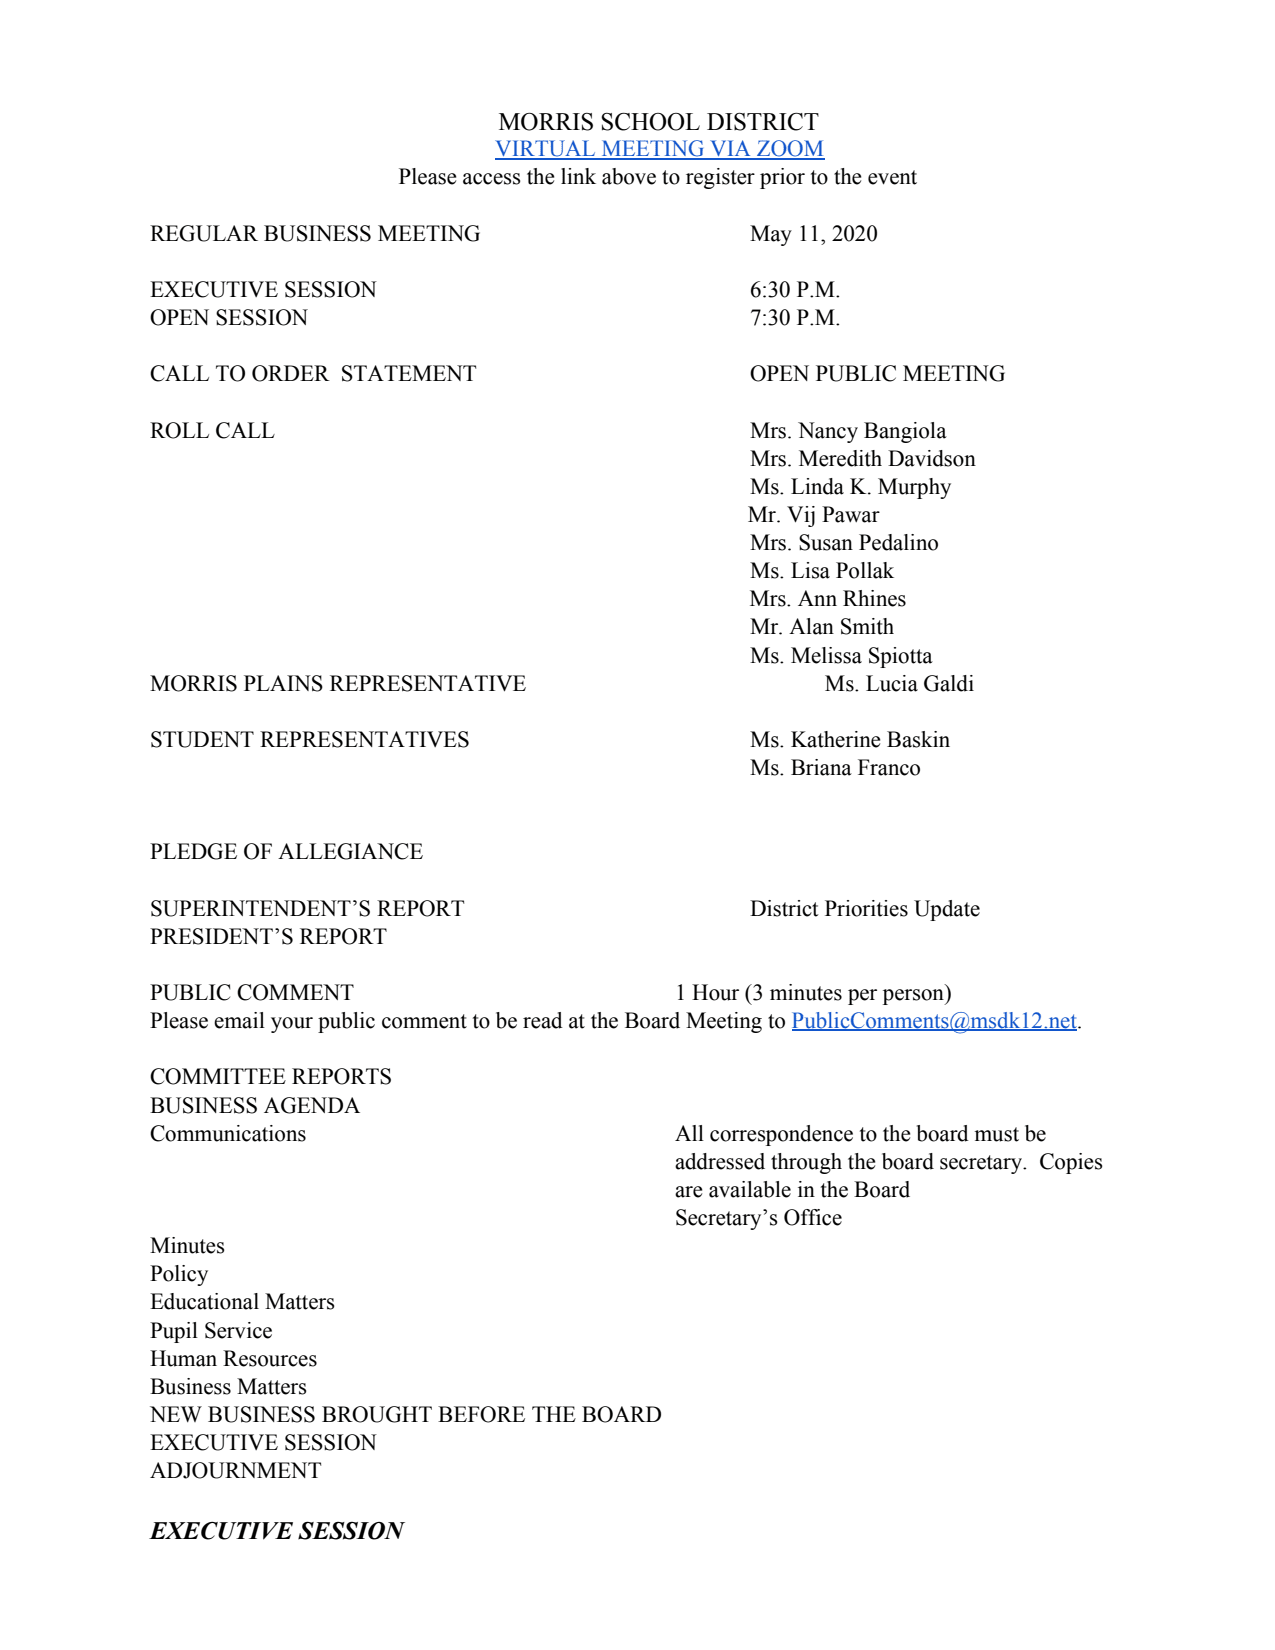 First page of the PDF file: 05_11_20Agenda